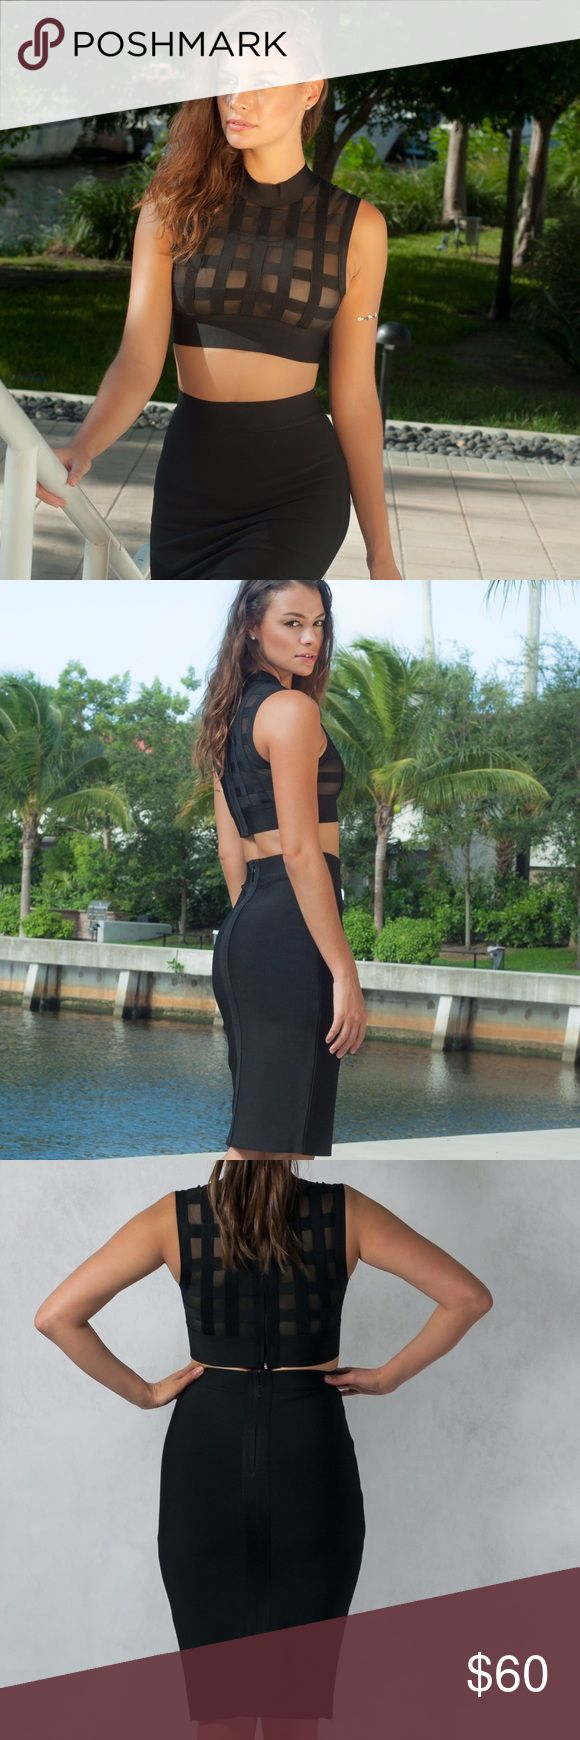 Black Bodycon Top N' Skirt Set Mesh and bandage crop  bodycon top. High waisted bodycon skirt. Perfect fit. Seamless zipper at back of top and skirt. Dresses Midi